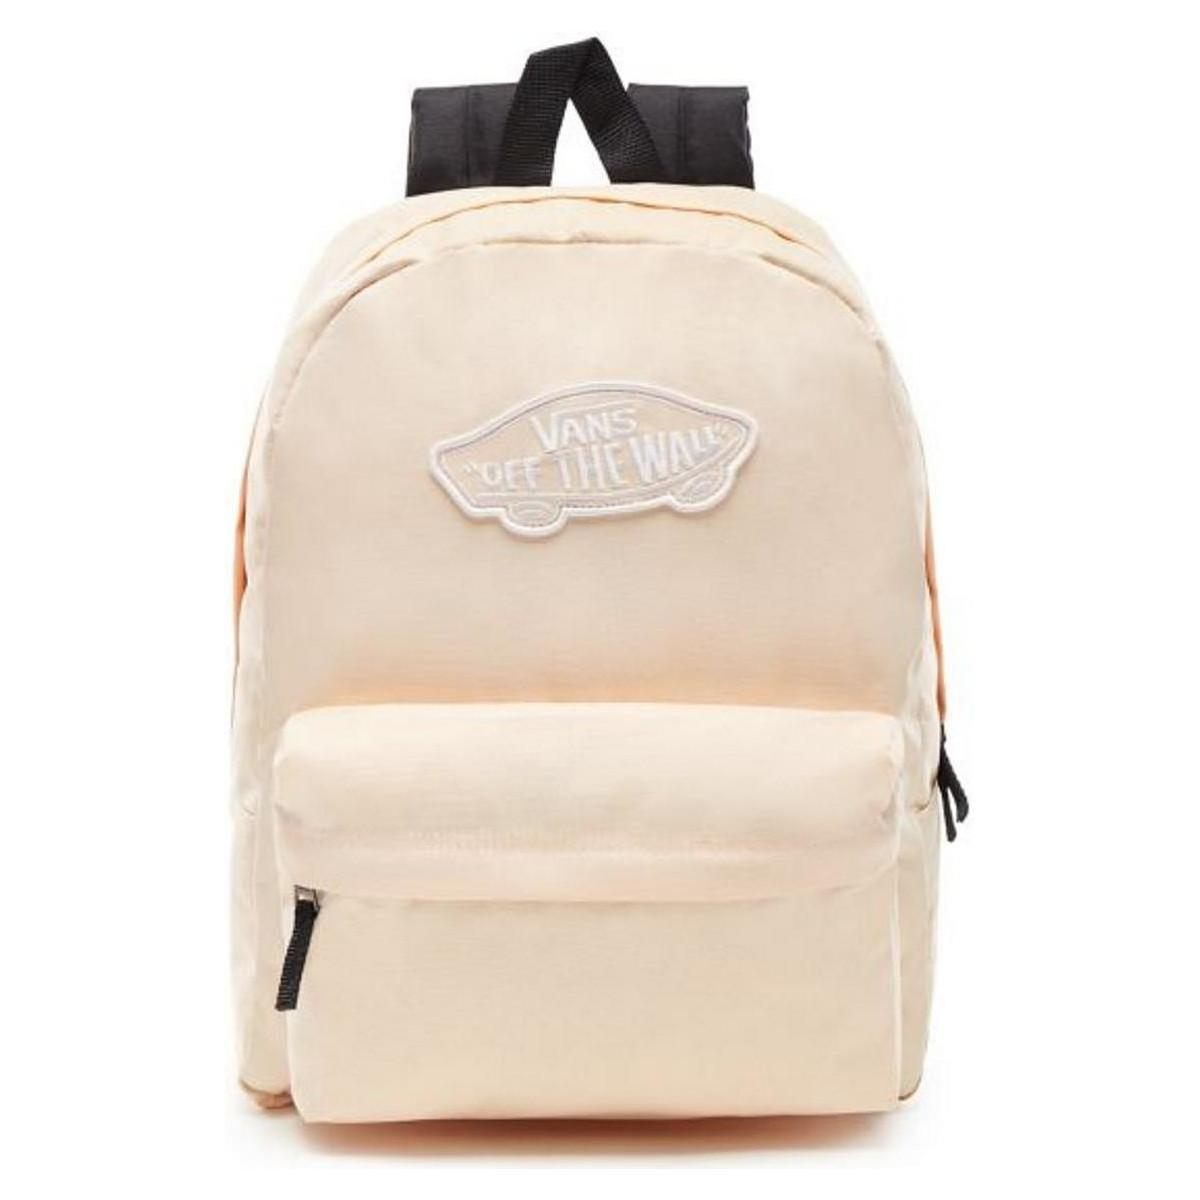 18acb679d1 Vans Realm Backpack - Bleached Apricot Women s Backpack In Other - Lyst